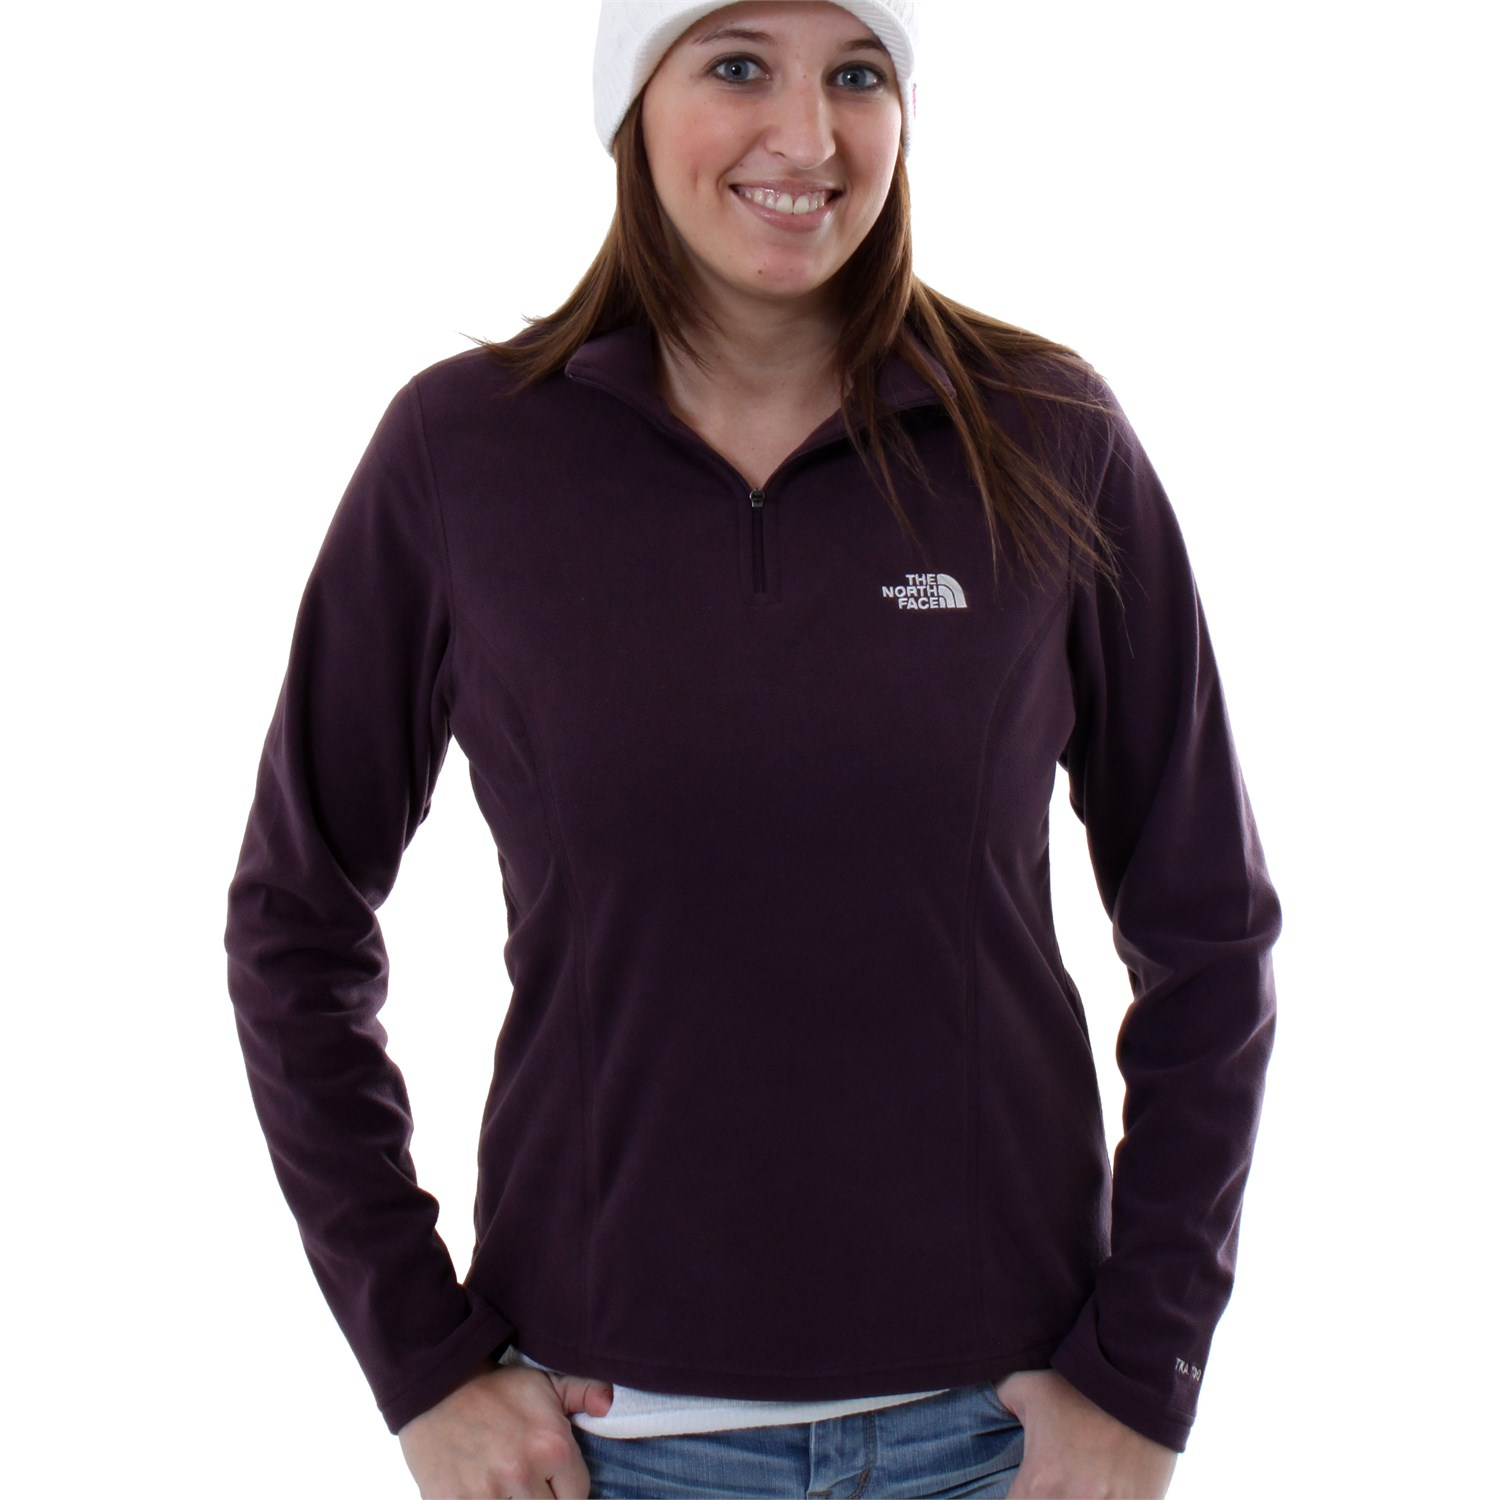 09bbb6e042 The North Face TKA 100 Glacier 1 4-Zip Top - Women s